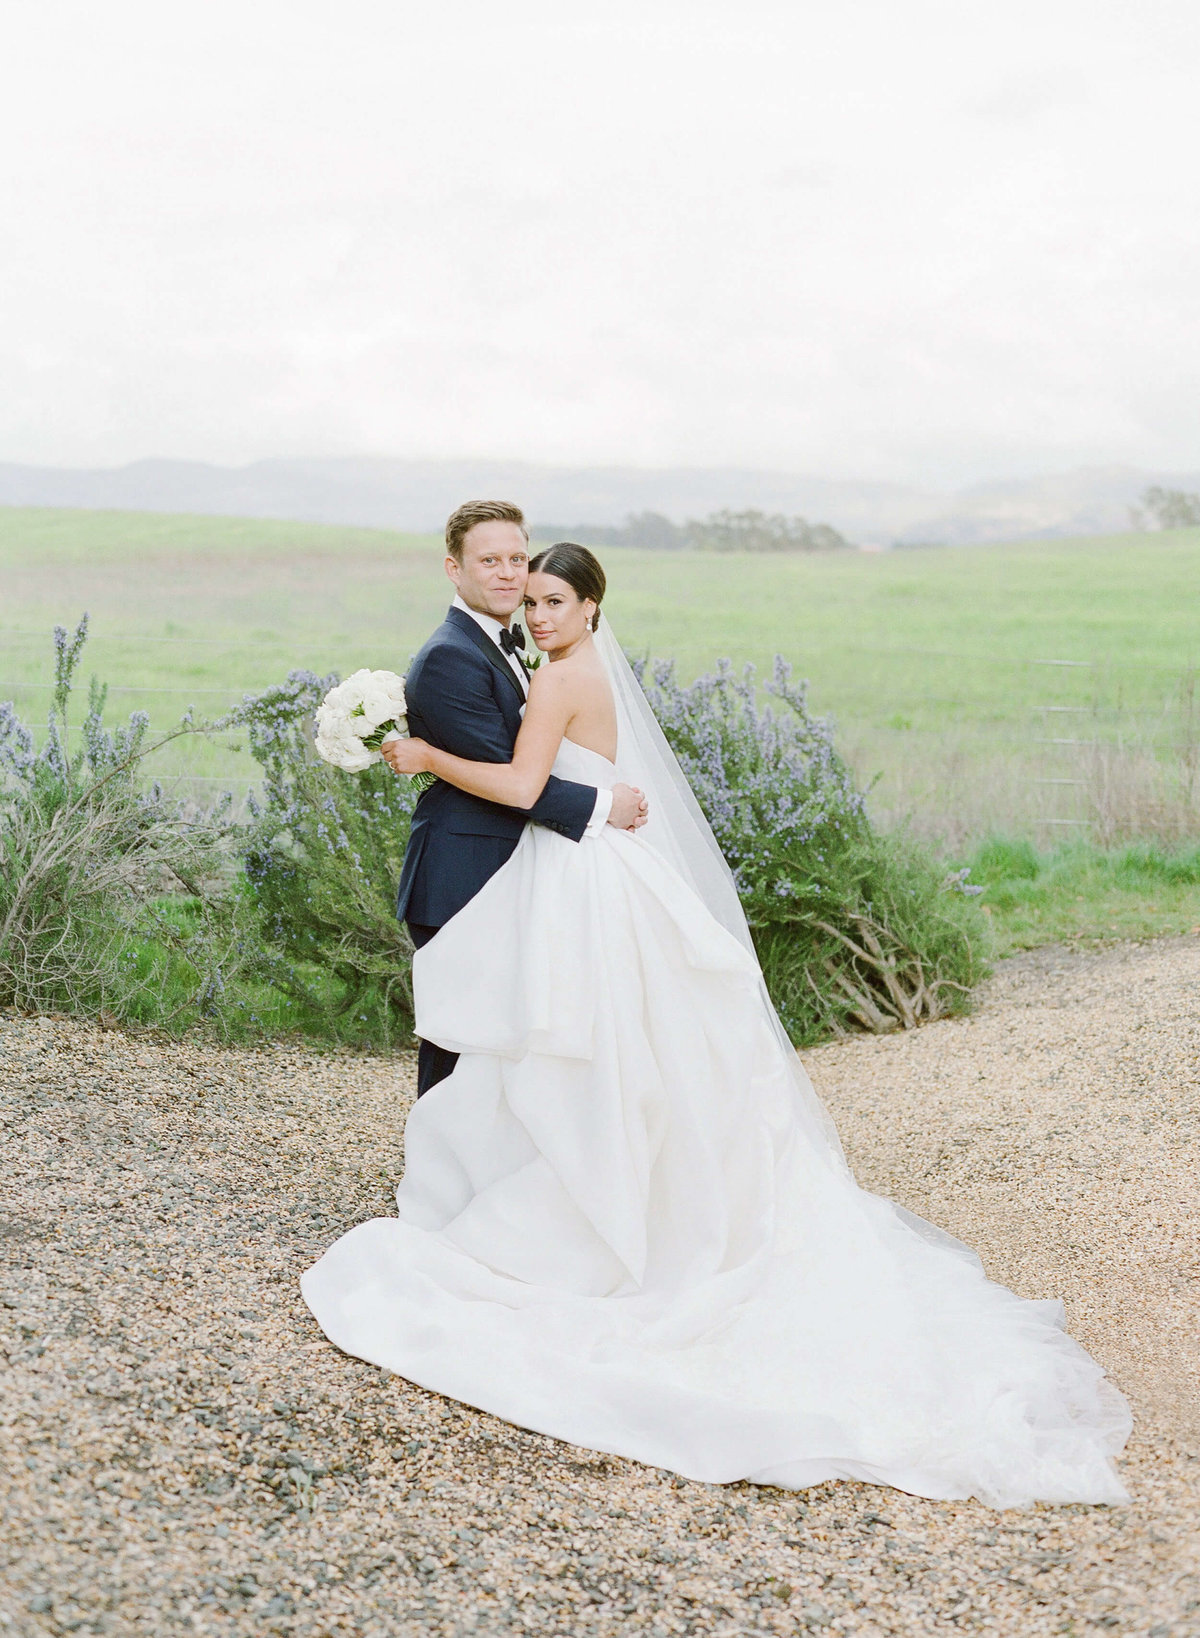 45-KTMerry-weddings-Lea-Michele-wedding-port…it-napa-valley